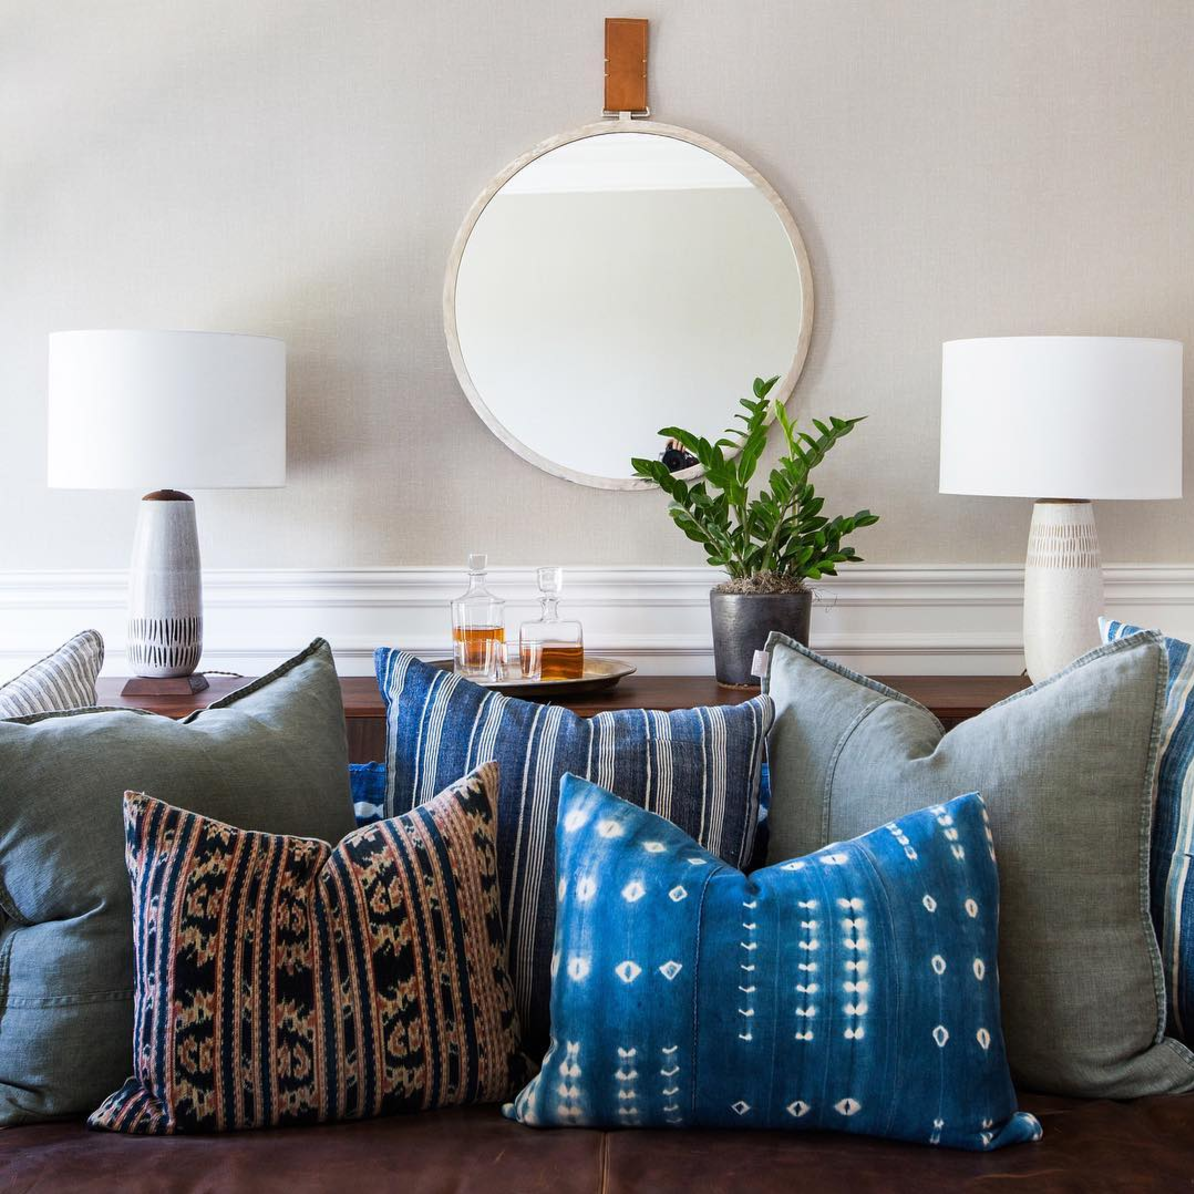 Living Room with Blue Dyed Pillows and Round Mirror (Plus, where to find the Round Mirror at every price + why they look so great in every space!) Click through for the details. | glitterinc.com | @glitterinc